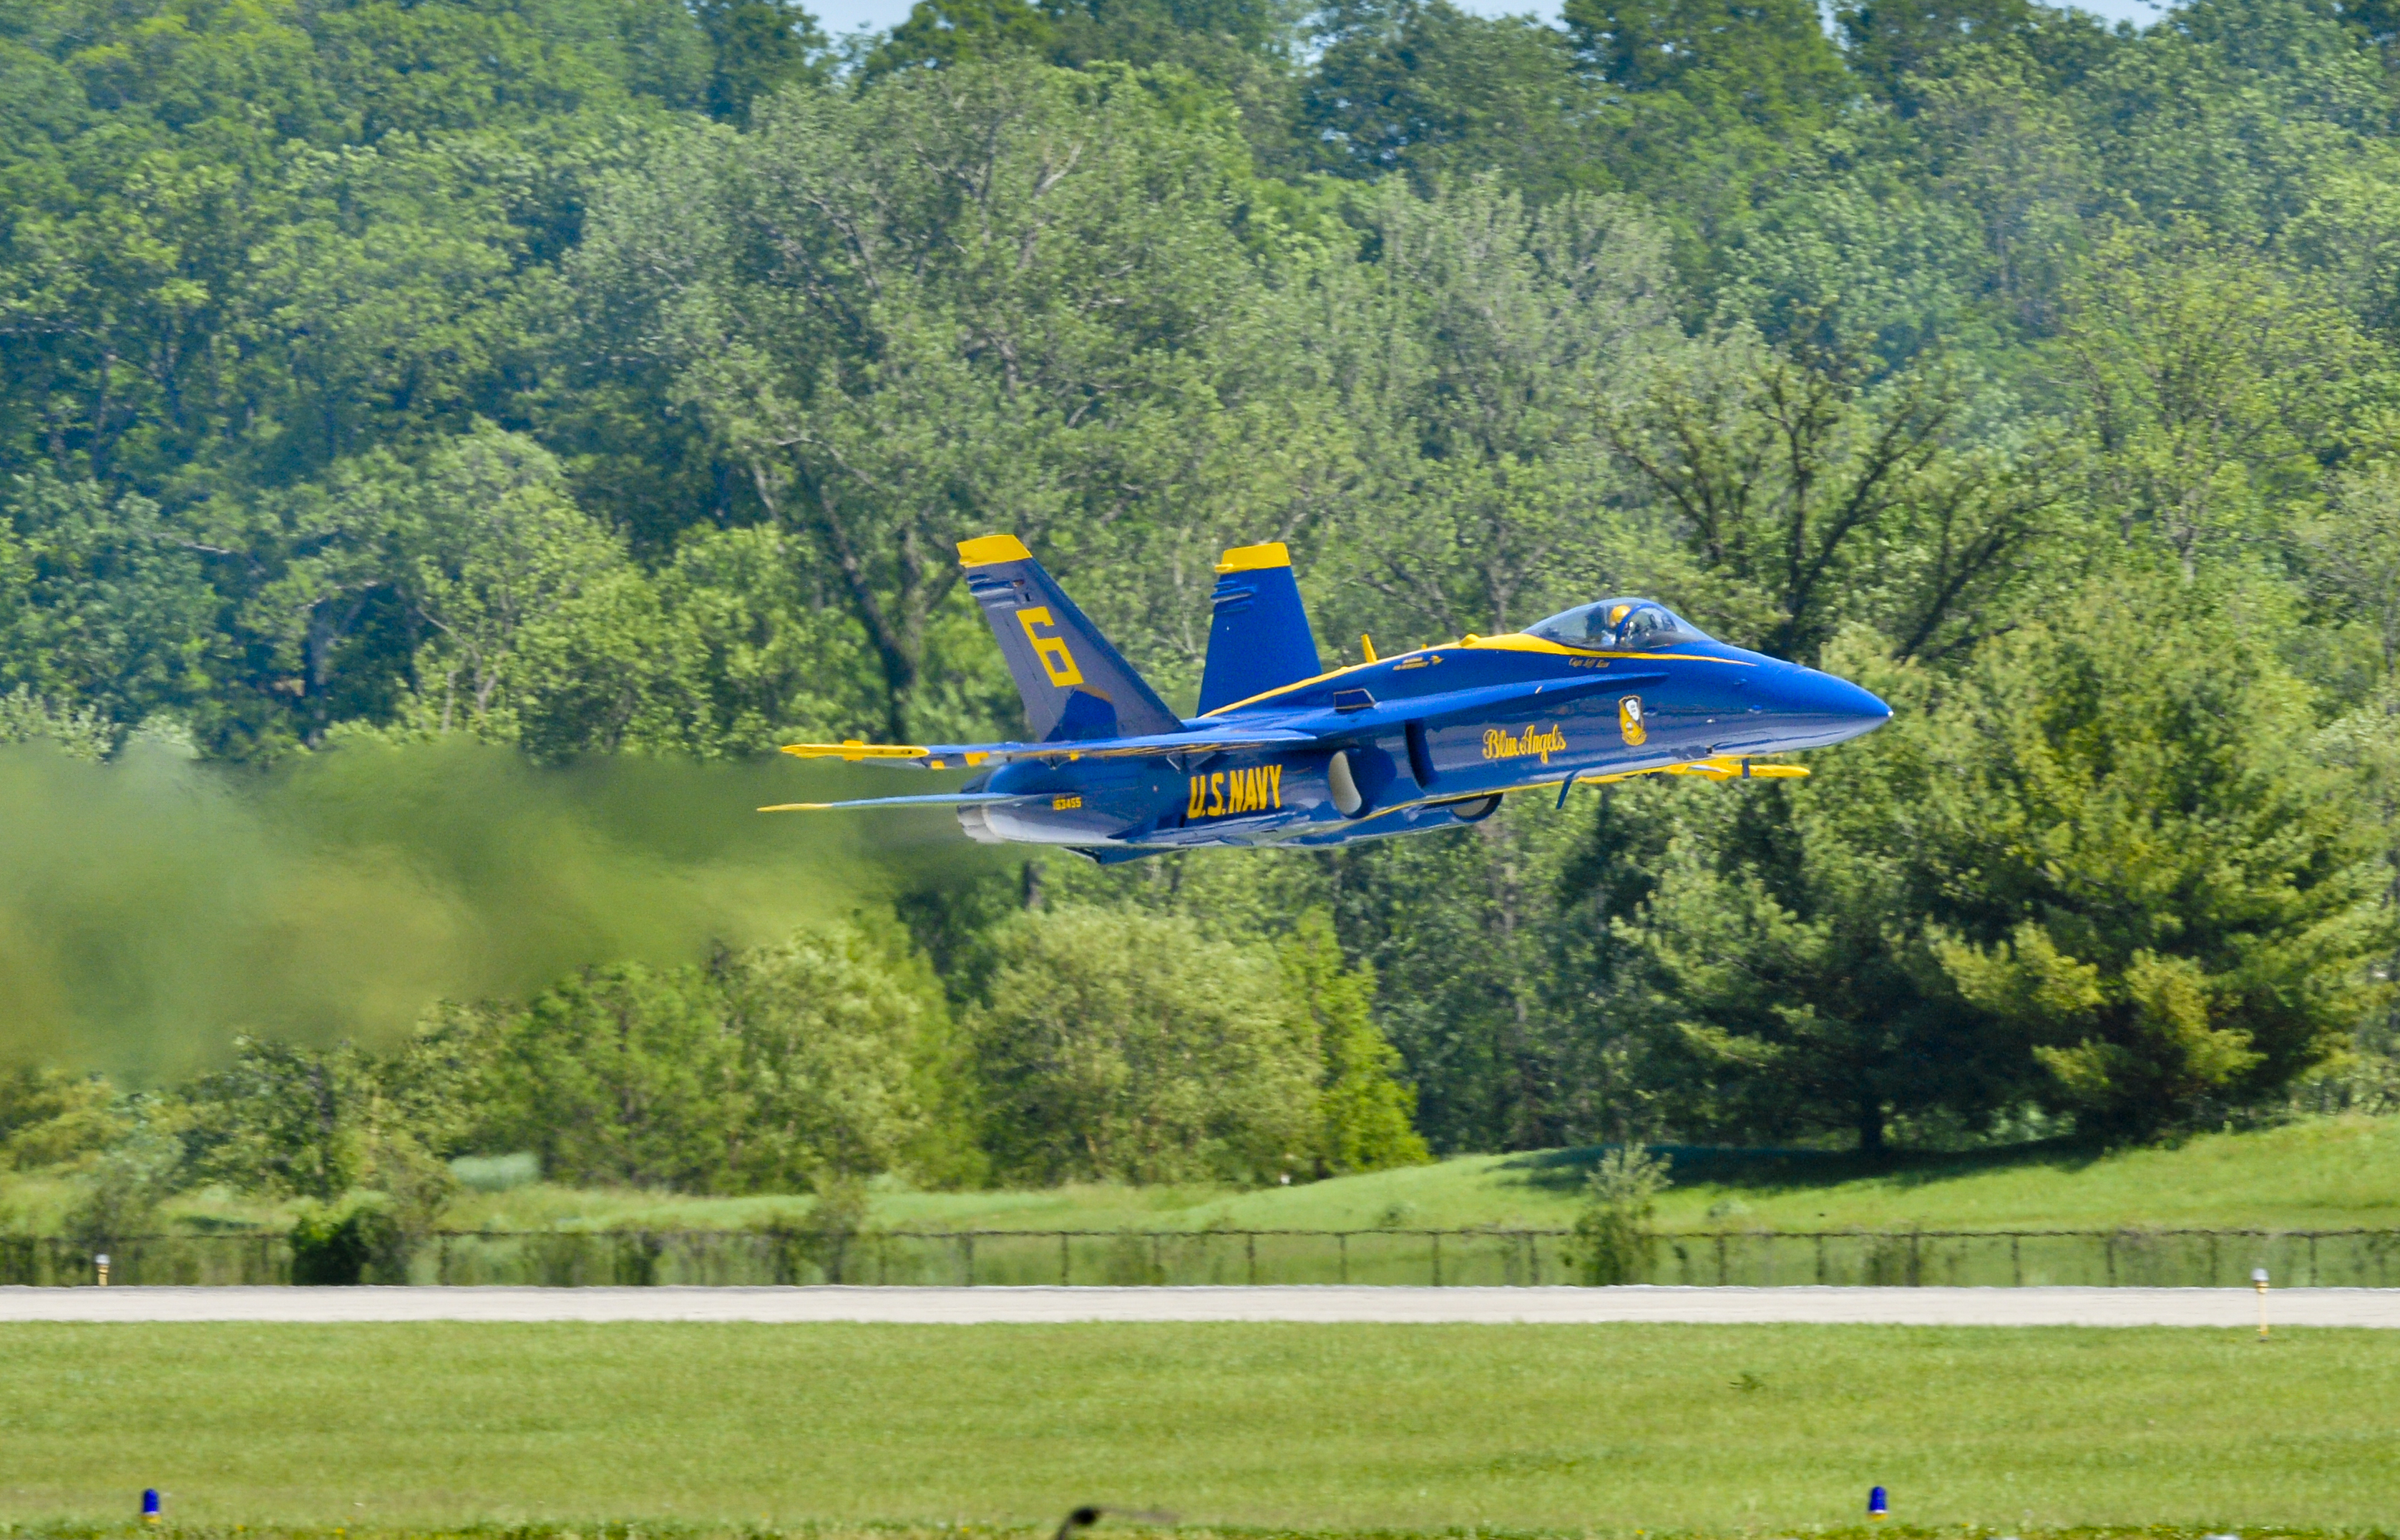 Us navy blue angels aircraft history report